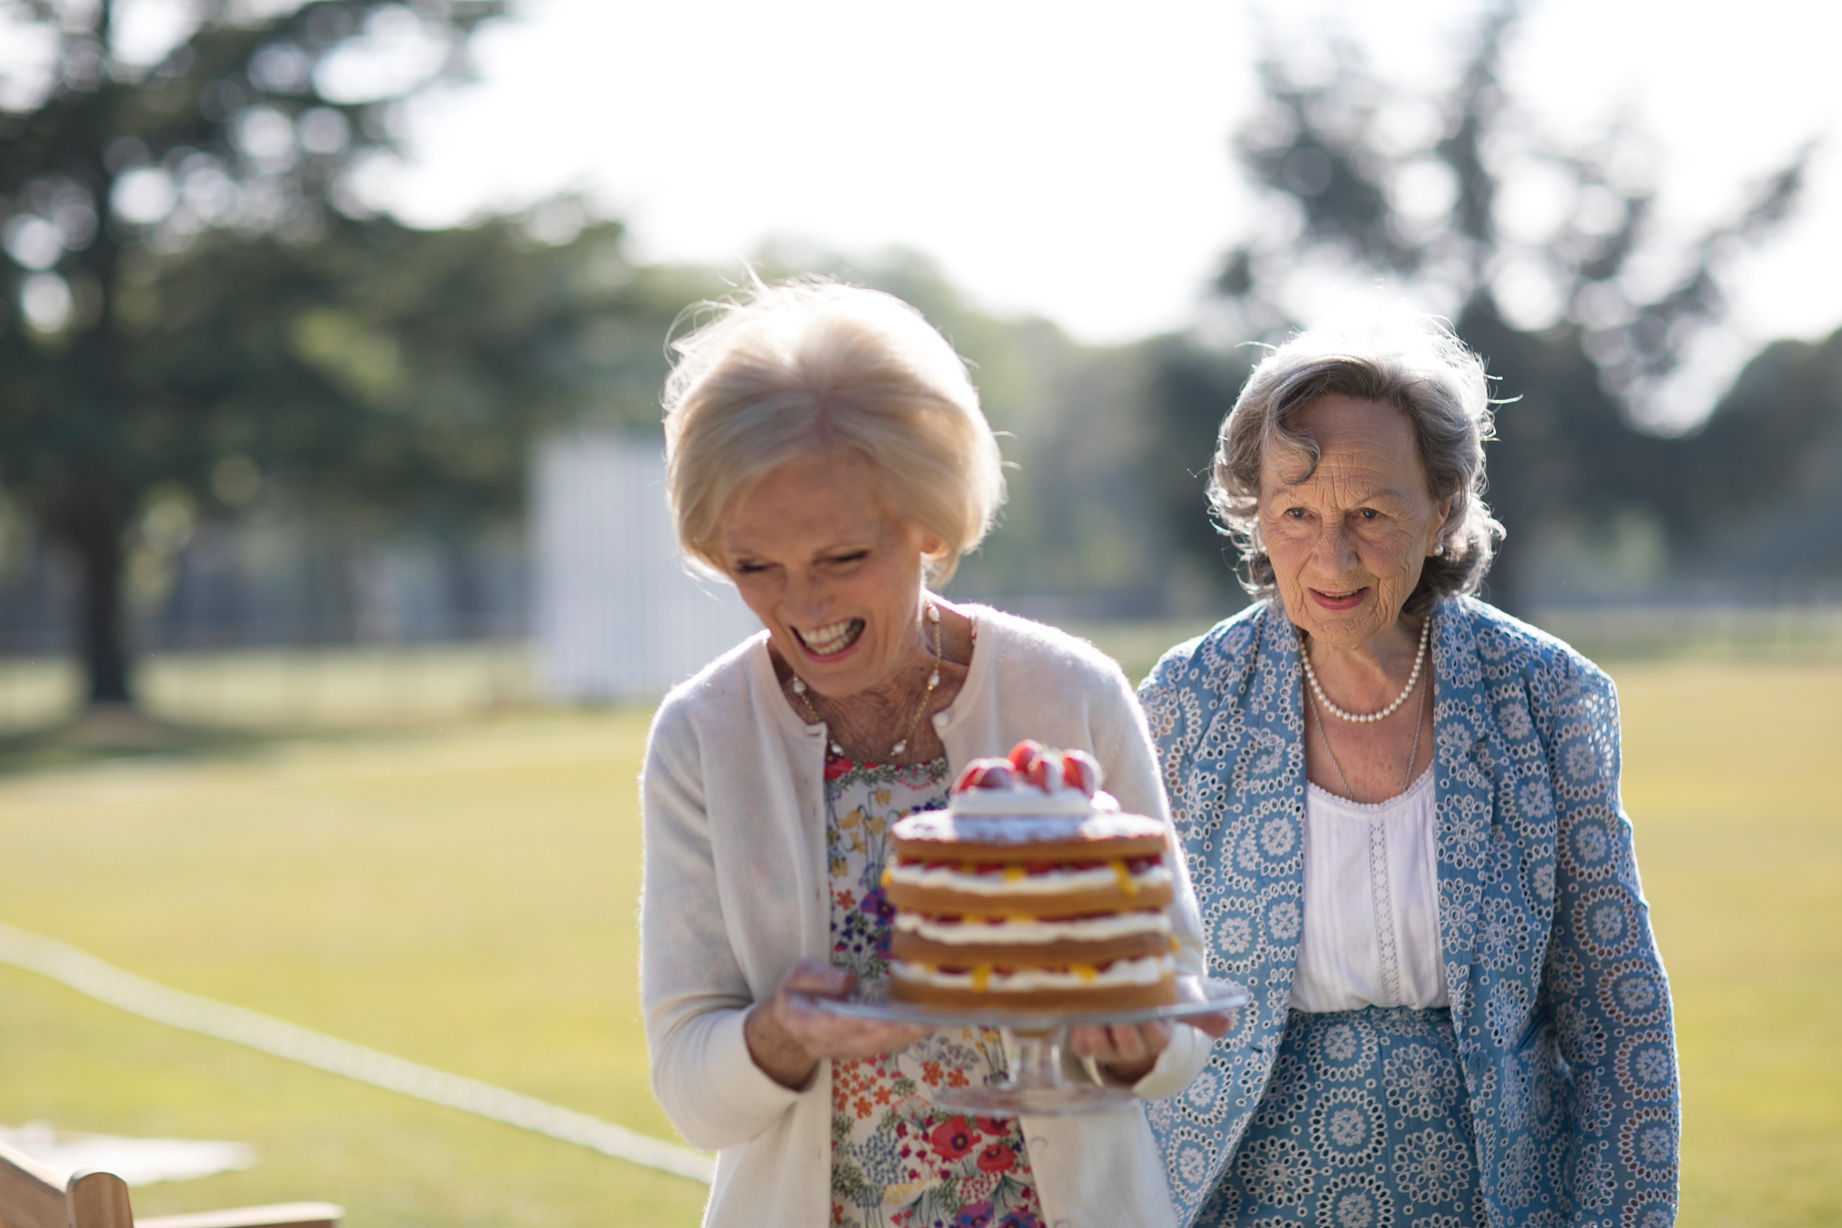 MaryBerry_CricketTea_NicoleHains_044.jpg